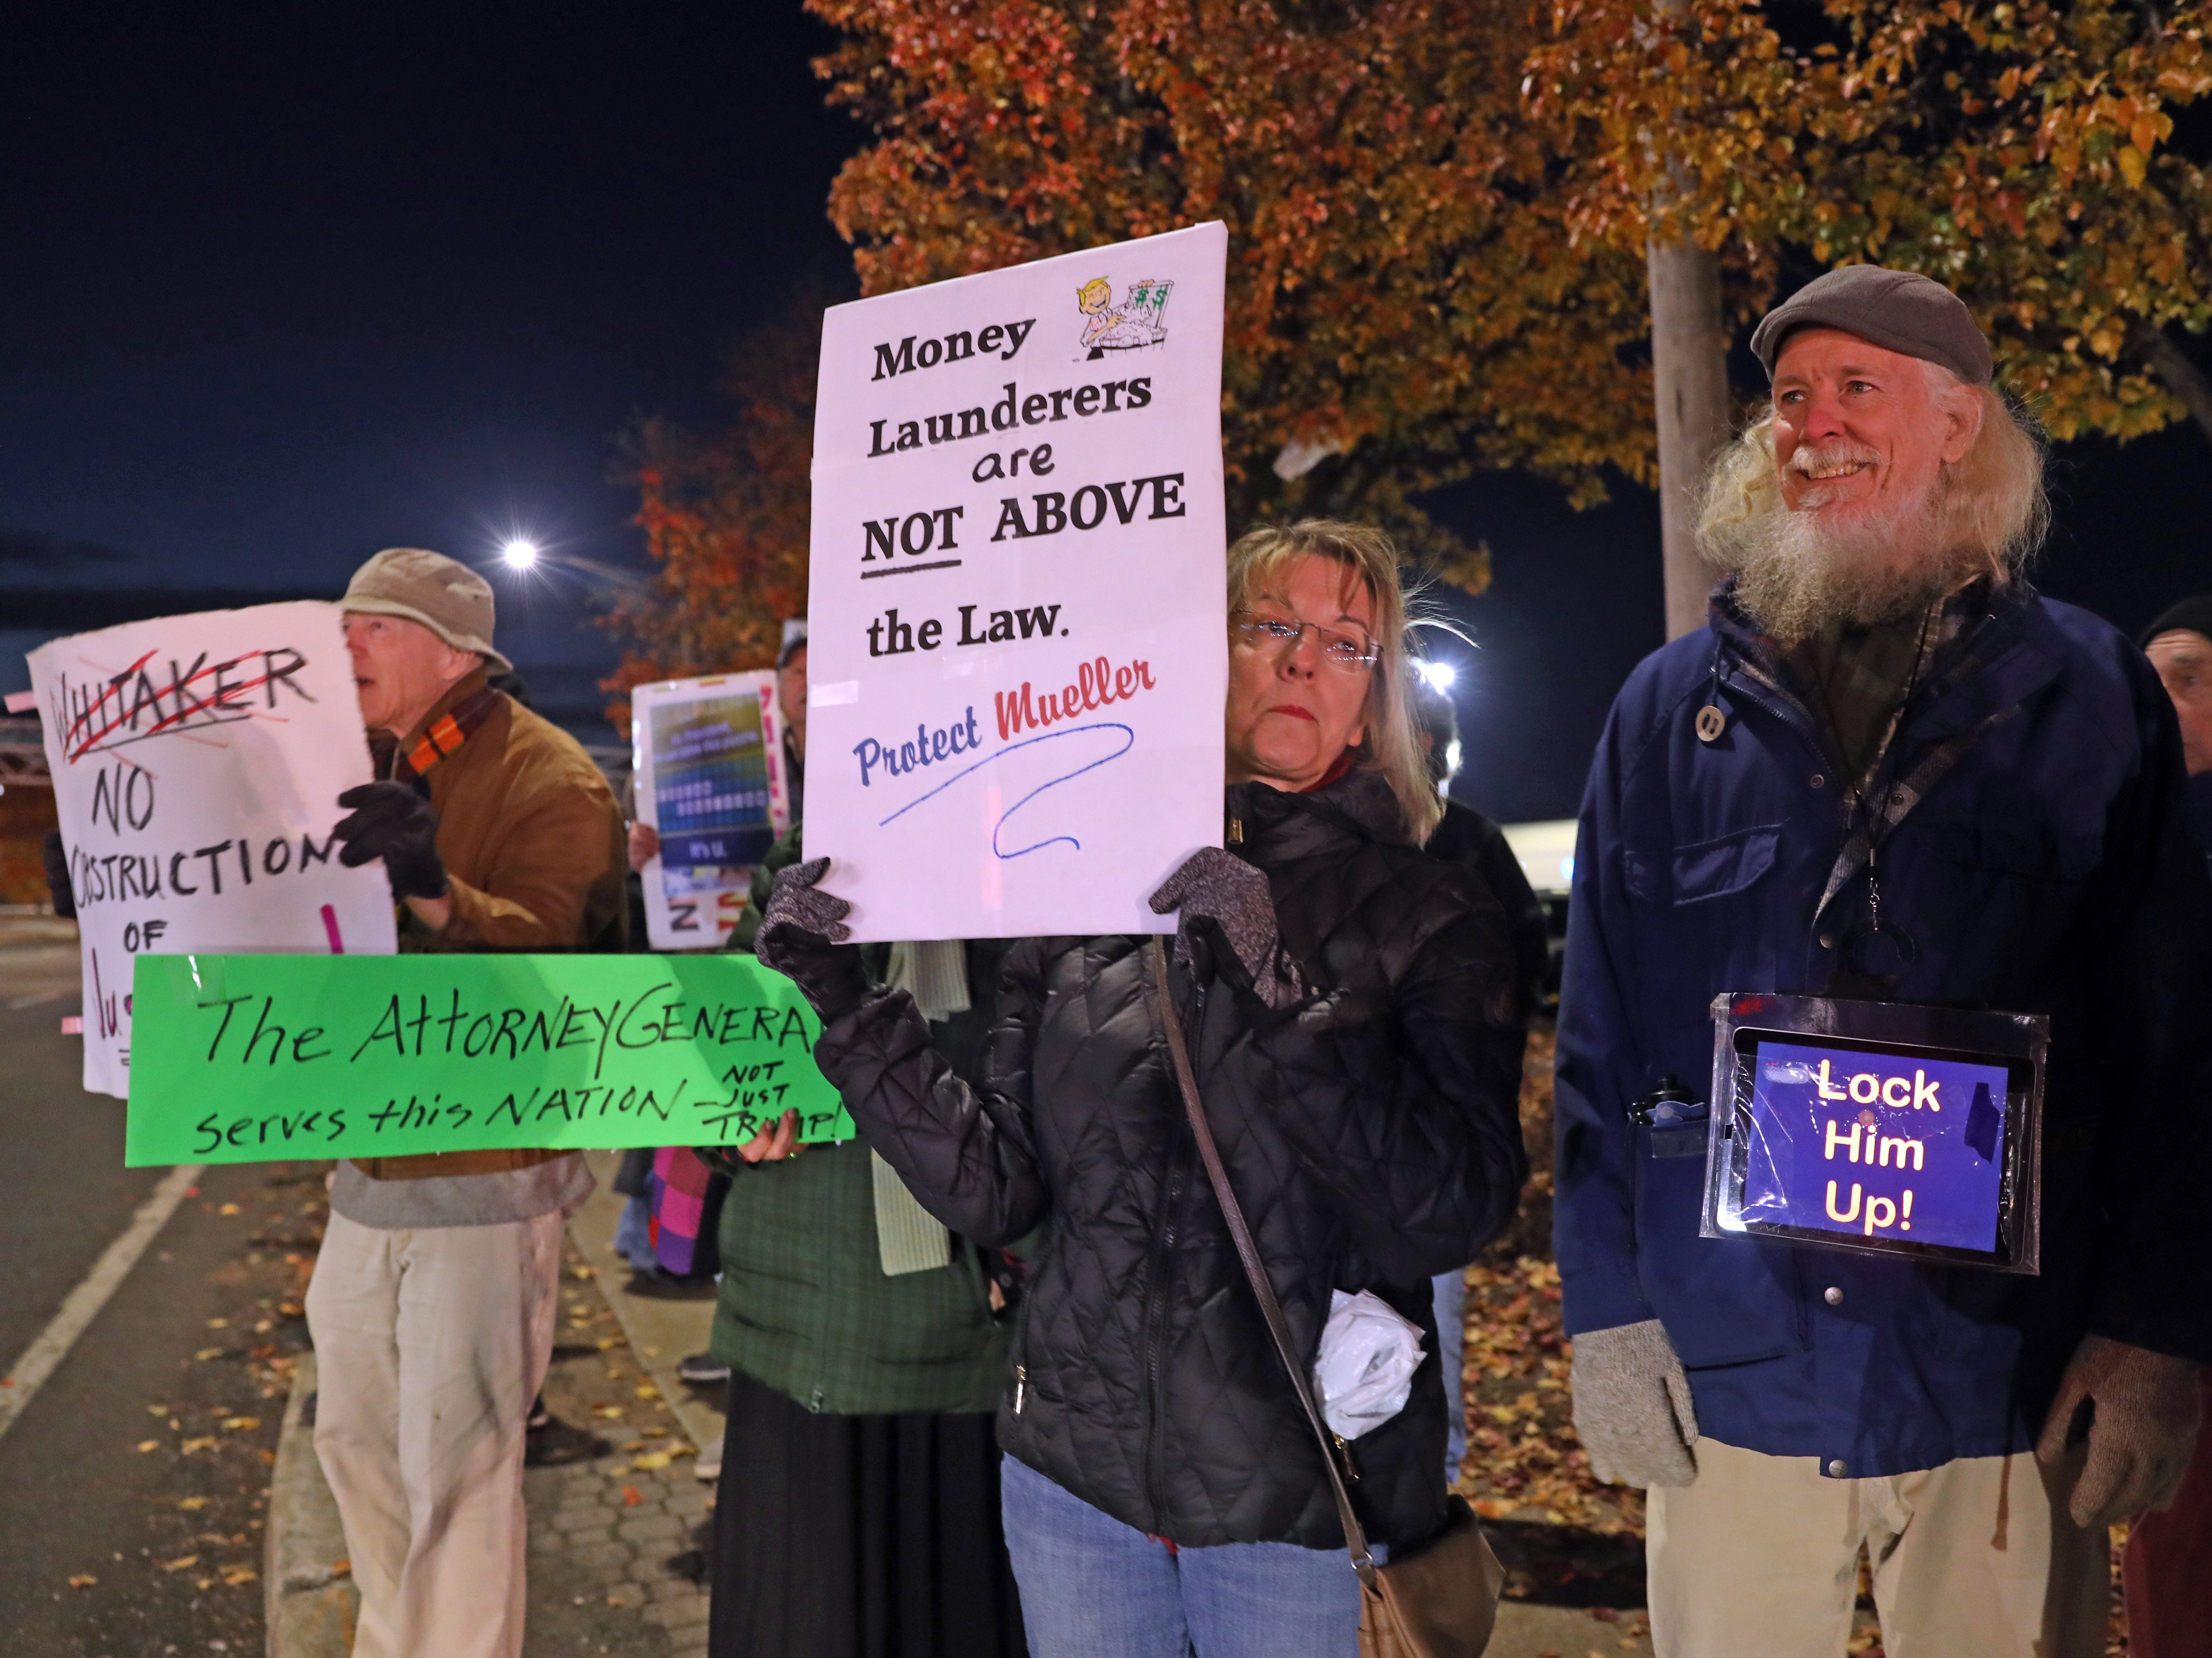 In the wake of U.S. Attorney General Jeff Sessions being fired on Wednesday people gathered on Route 59 in Nanuet on Nov. 8, 2018 to rally for the protection of Robert Mueller's investigation.